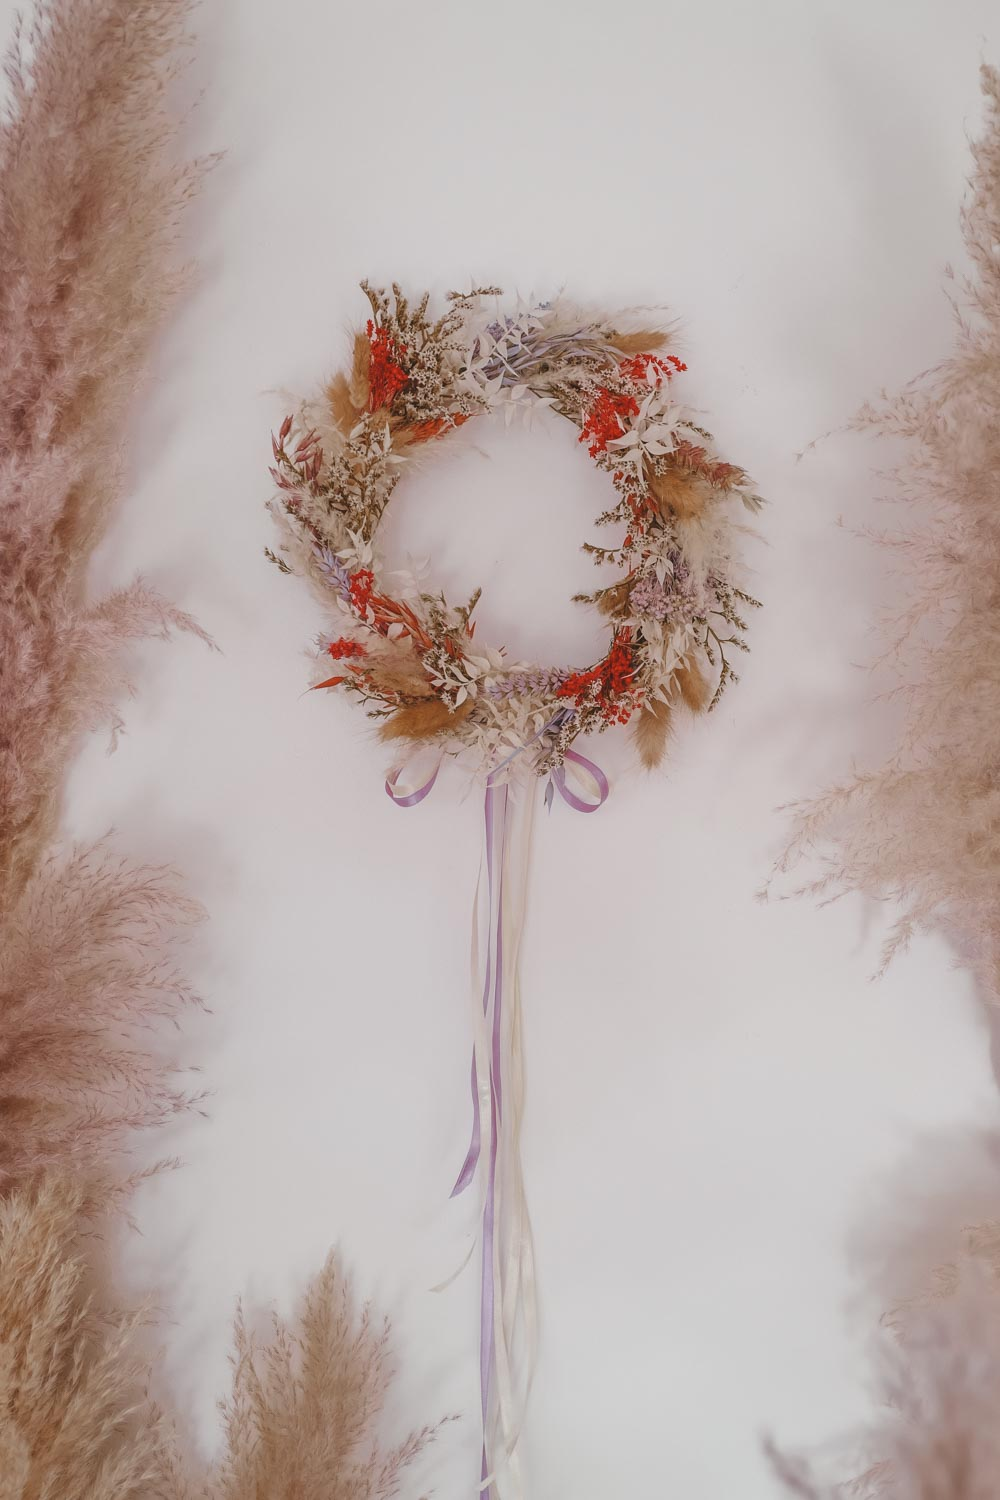 Handmade Dried Flower Hoop Arya